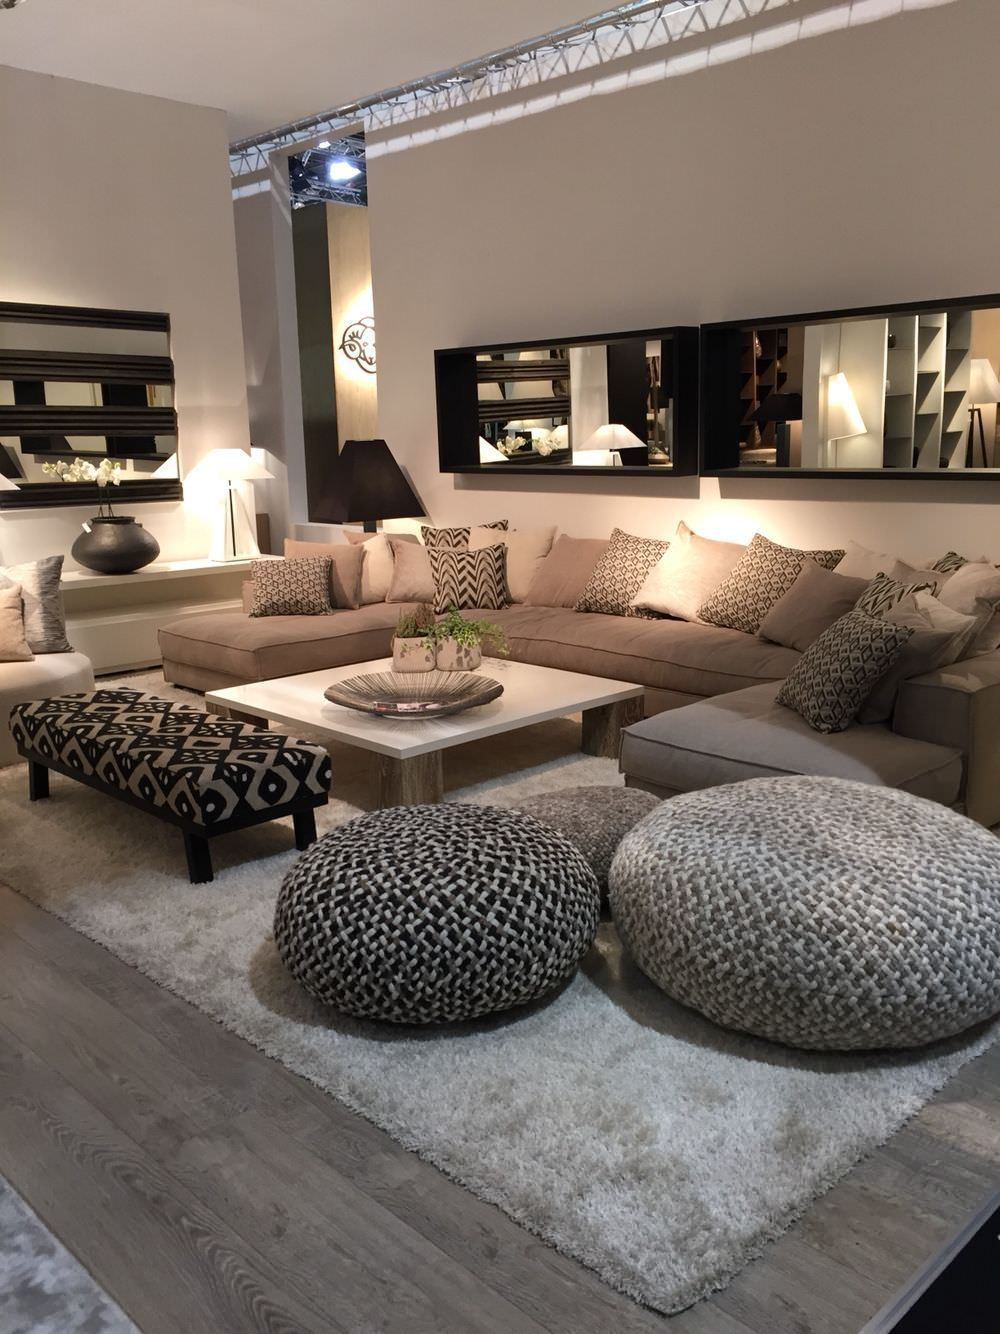 Luxury Living Room: 7 Non-Expensive Ideas To Create Luxury Living Room